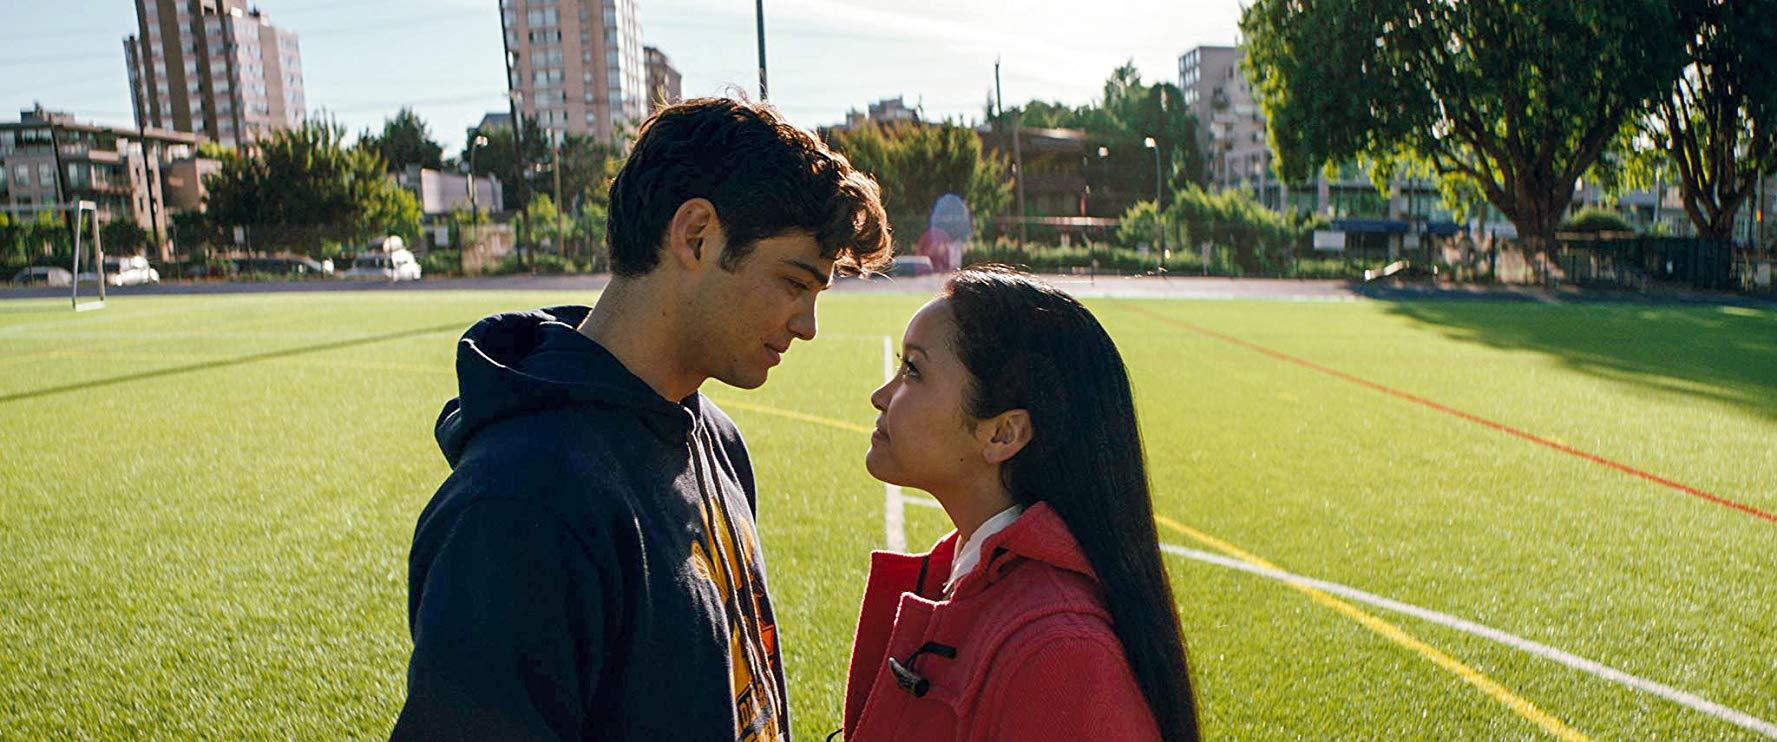 Noah Centineo and Lana Condor in To All the Boys I've Loved Before (2018). Credit: Netflix